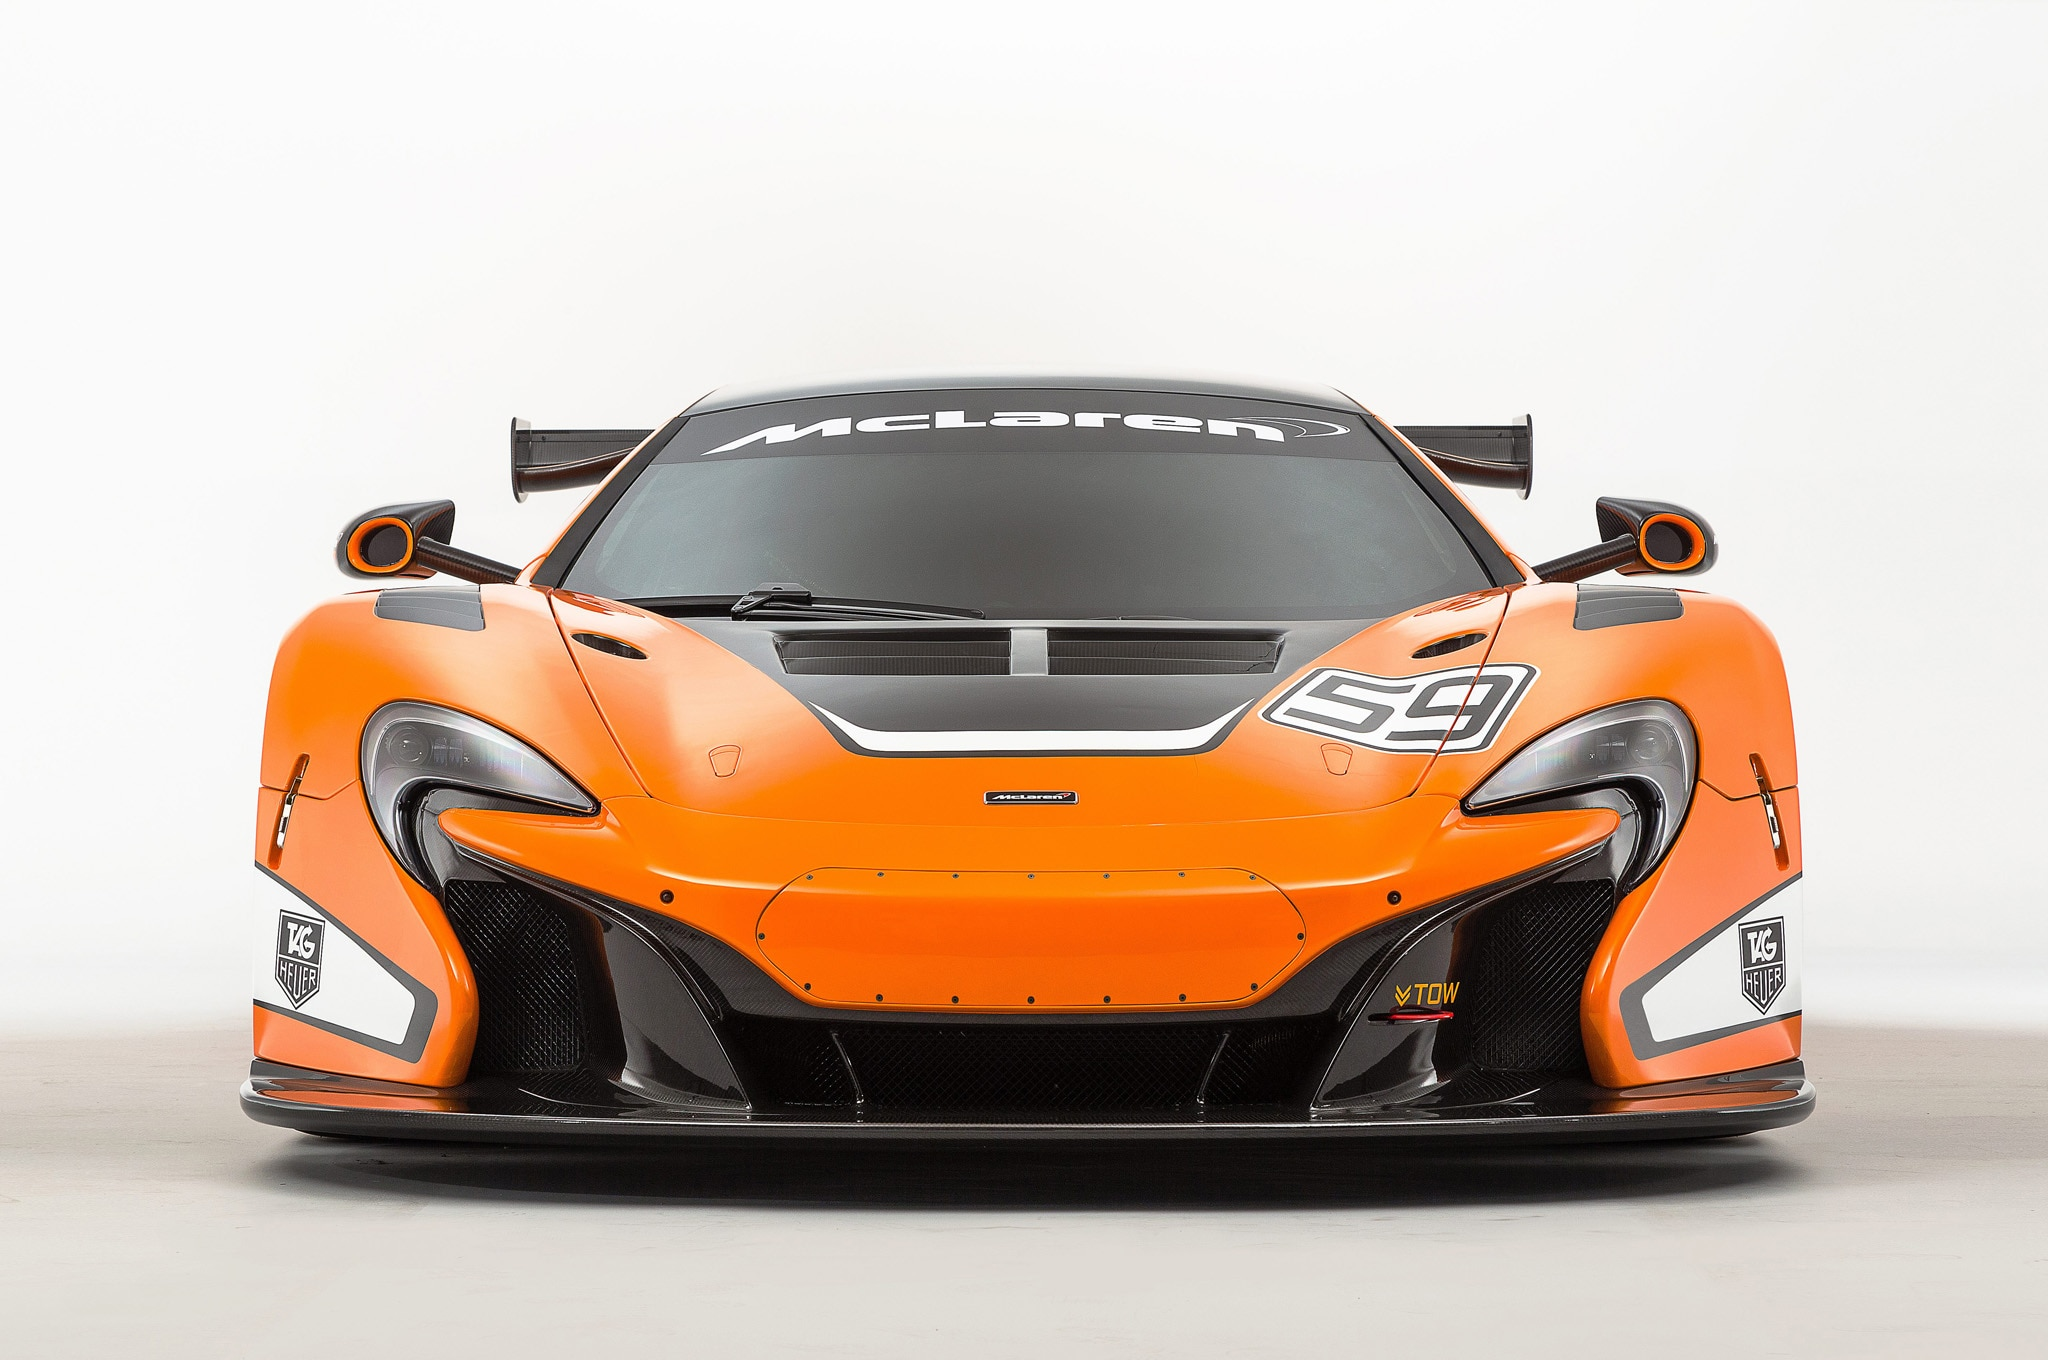 new mclaren 650s gt3 track car takes gt performance to the next level. Black Bedroom Furniture Sets. Home Design Ideas